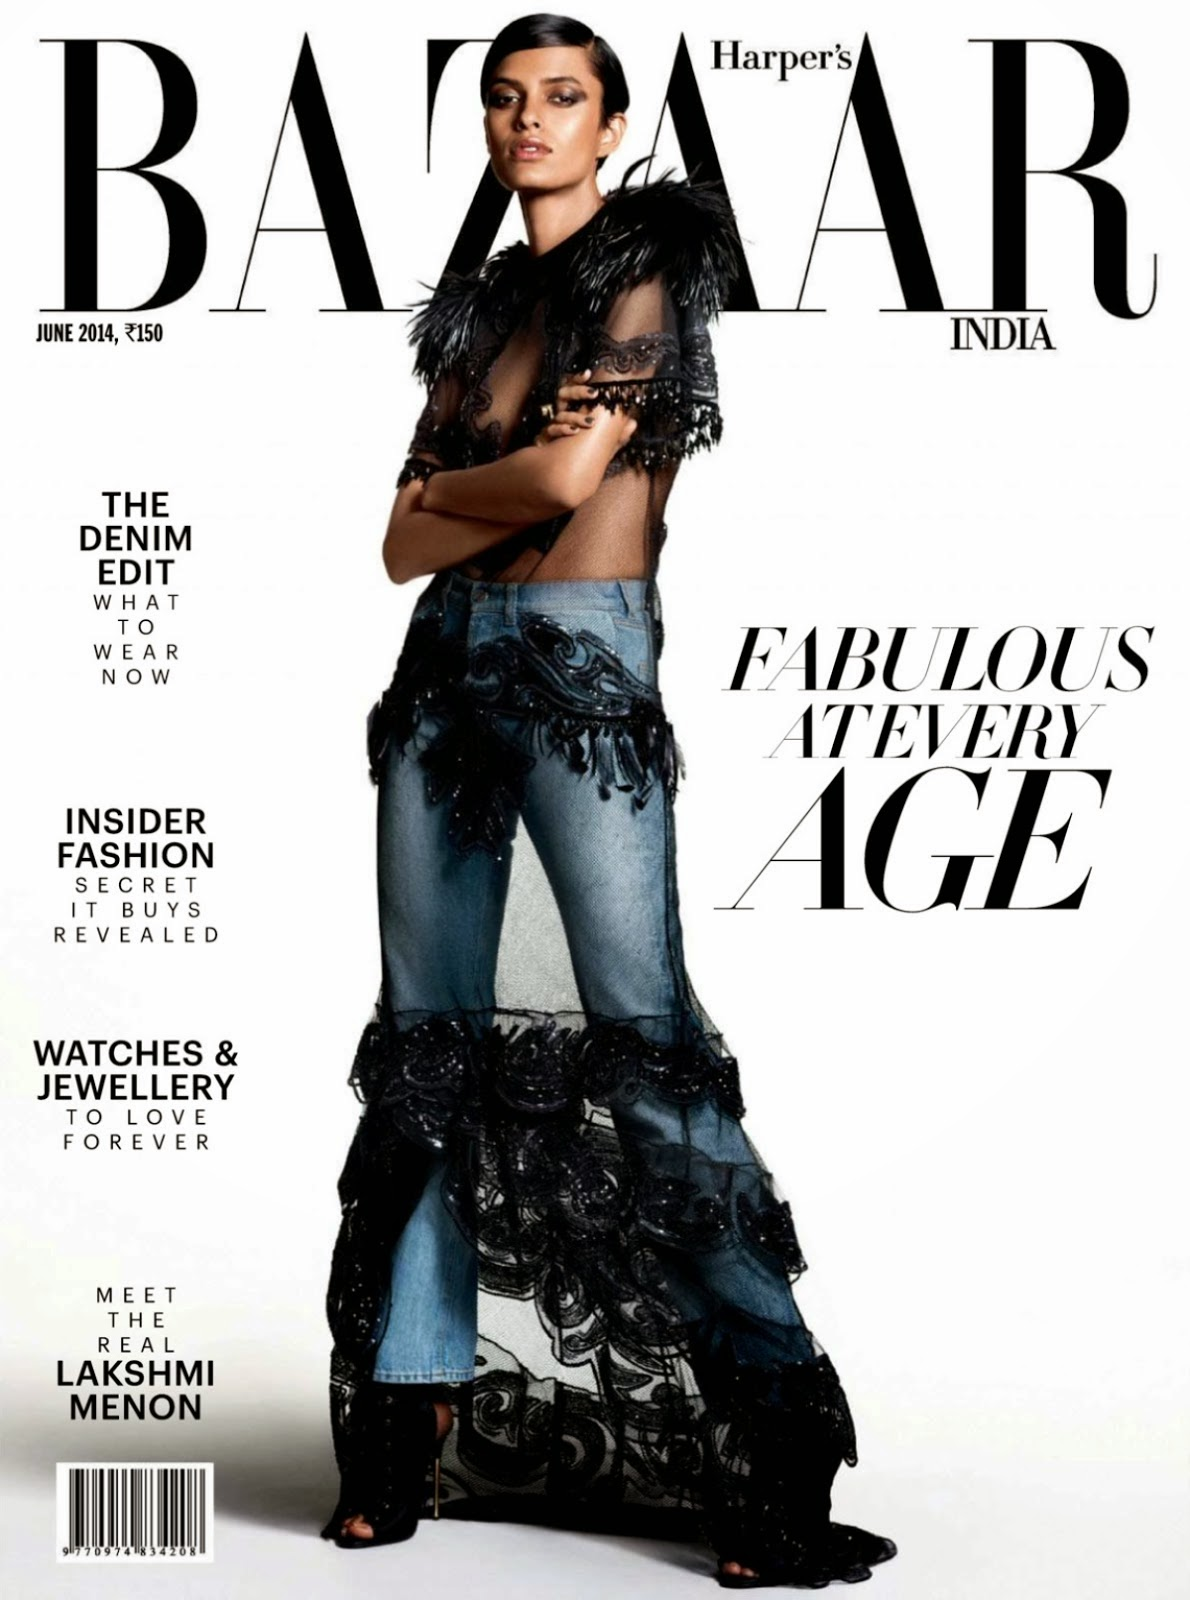 Lakshmi Menon By Tarun Vishwa For Harper's Bazaar Magazine, India, June 2014